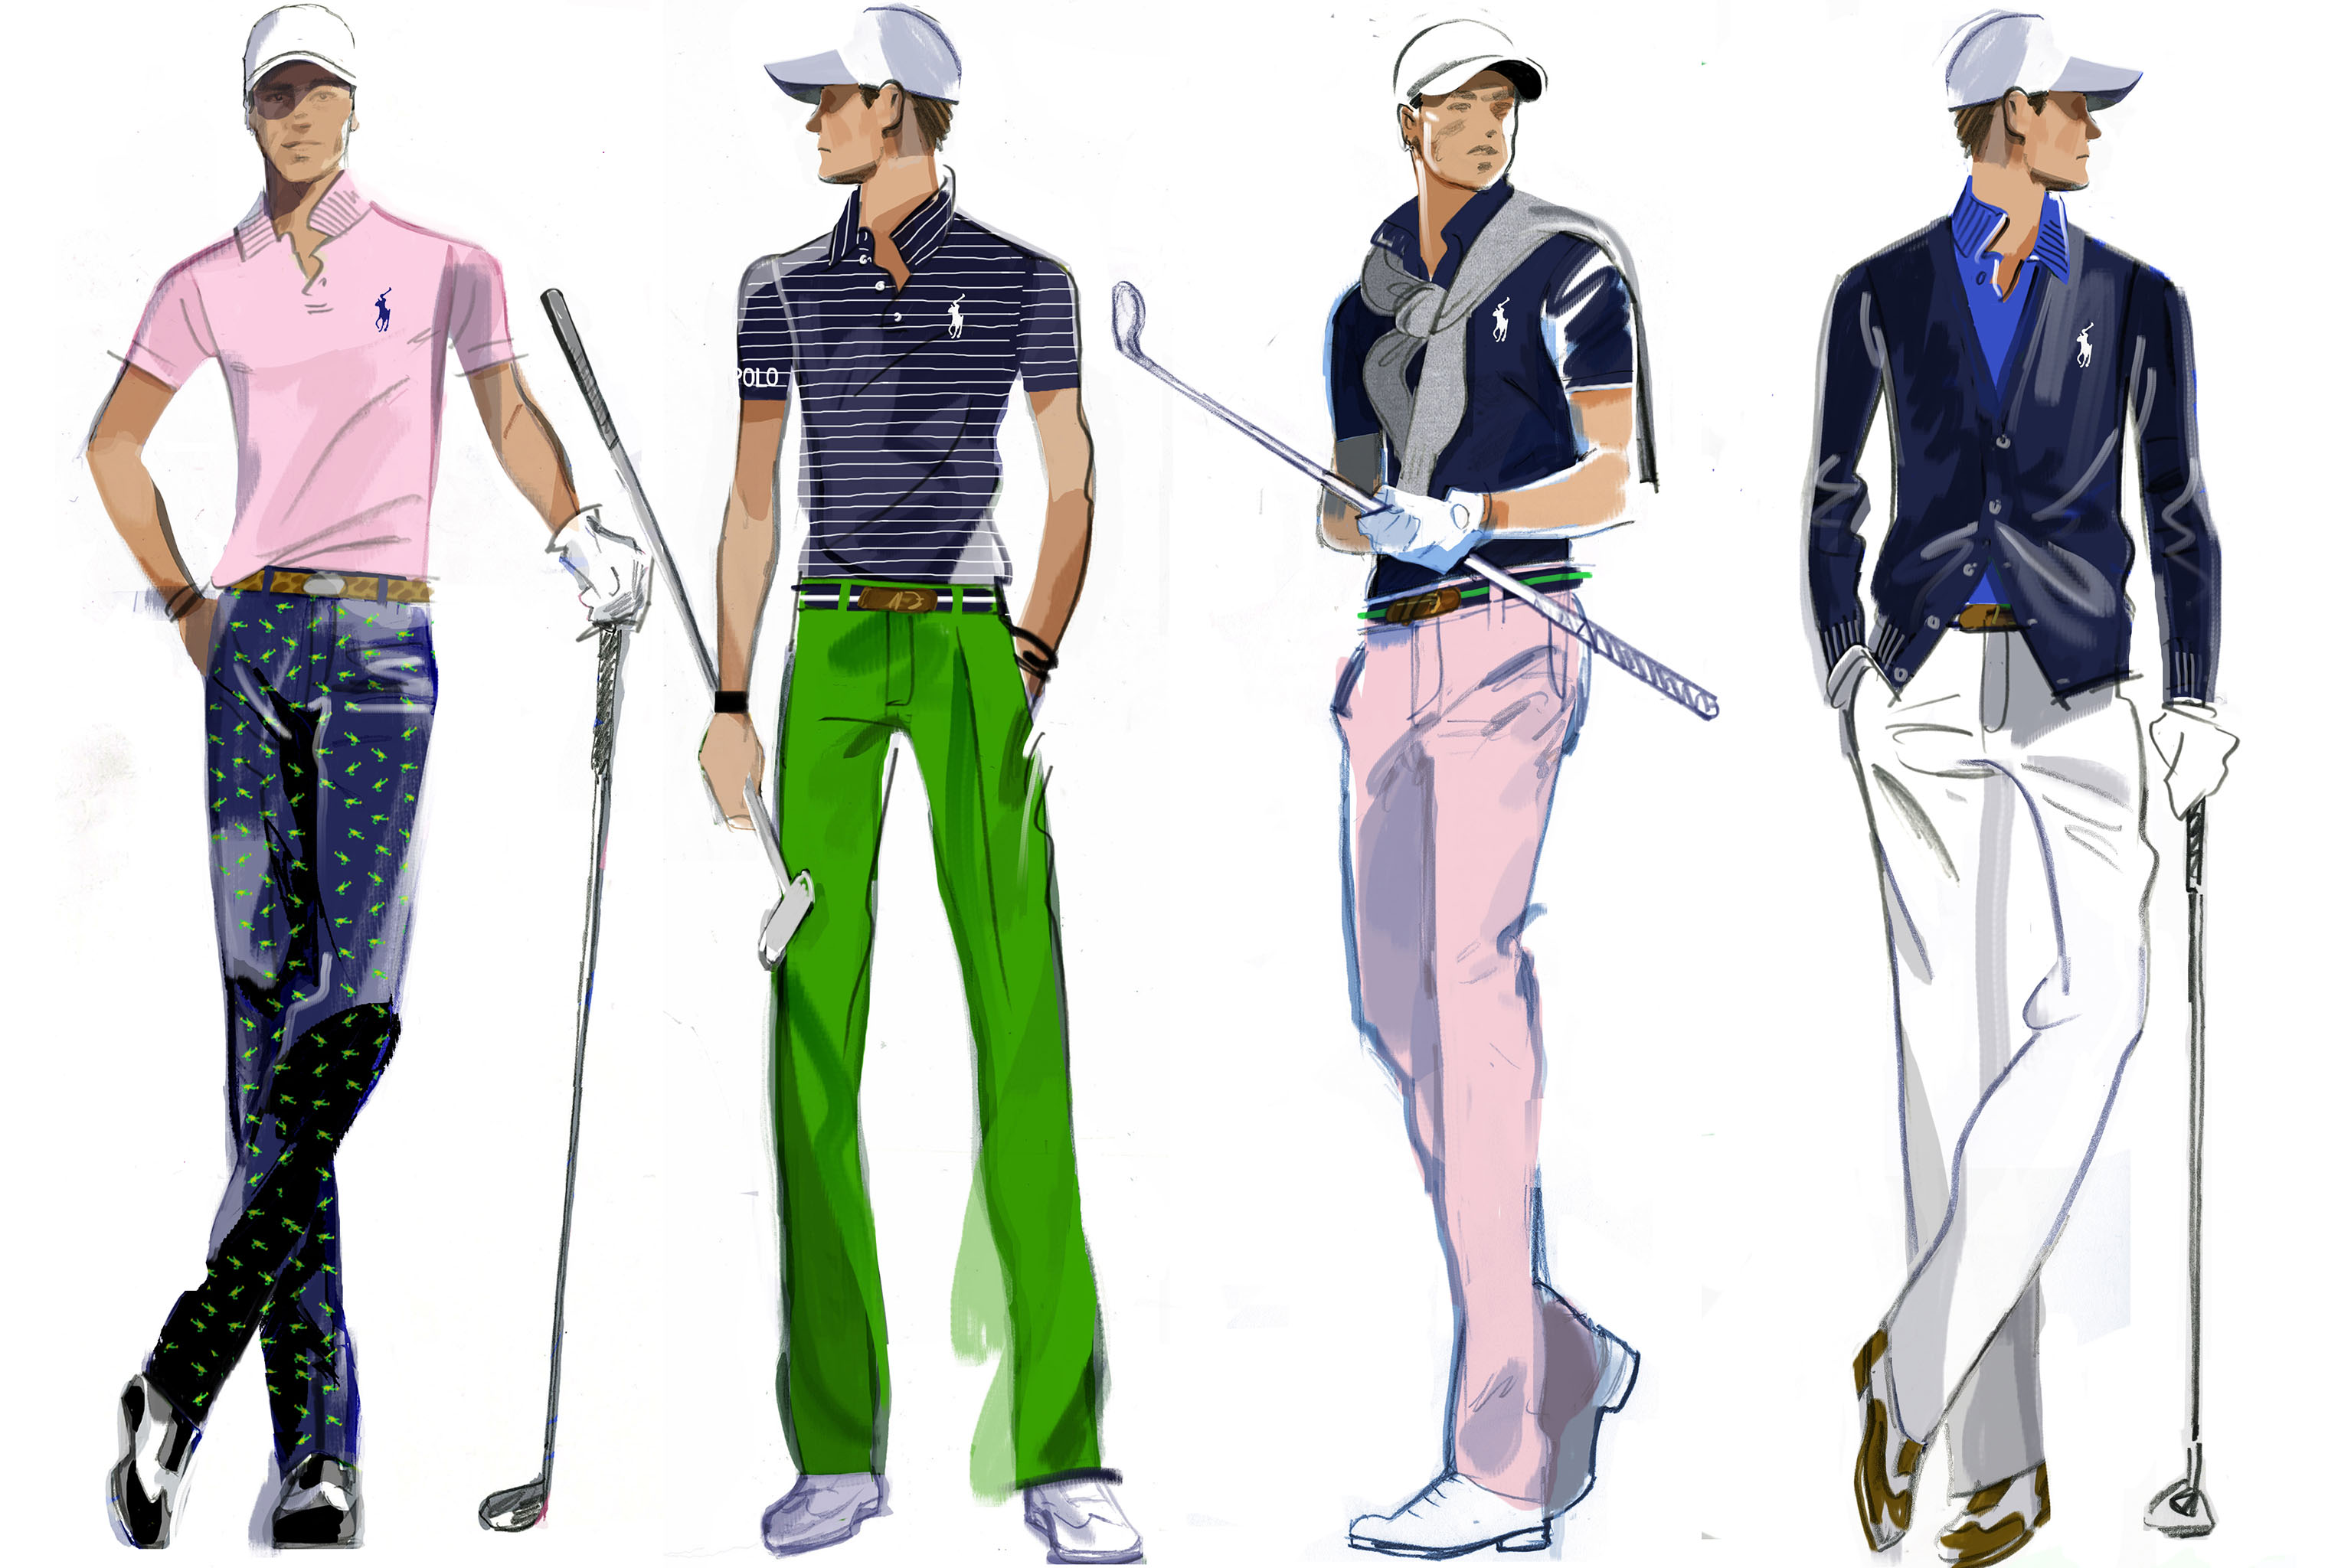 Looks from Ralph Lauren for the U.S. Open.